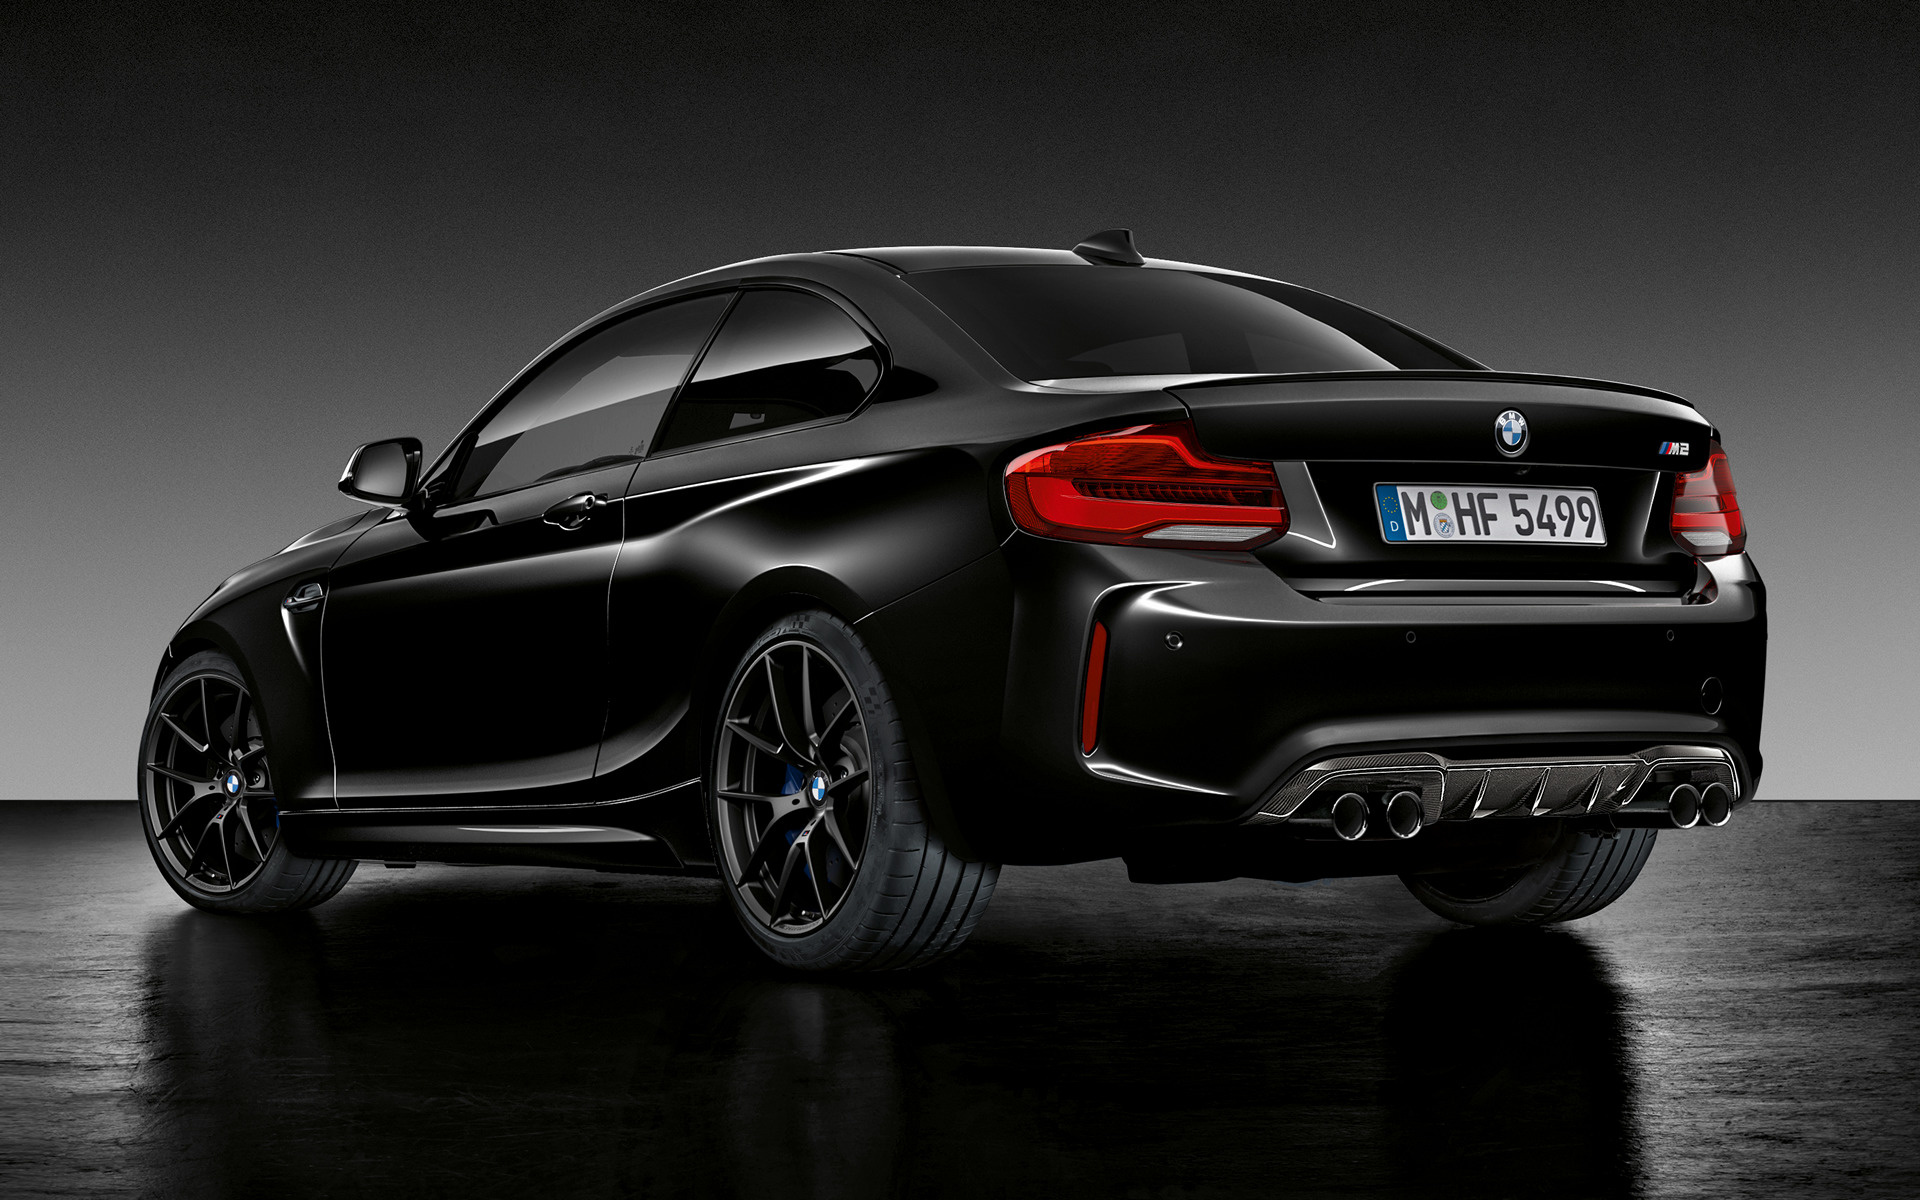 2018 Bmw M2 Coupe Black Shadow Edition Sfondi E Immagini